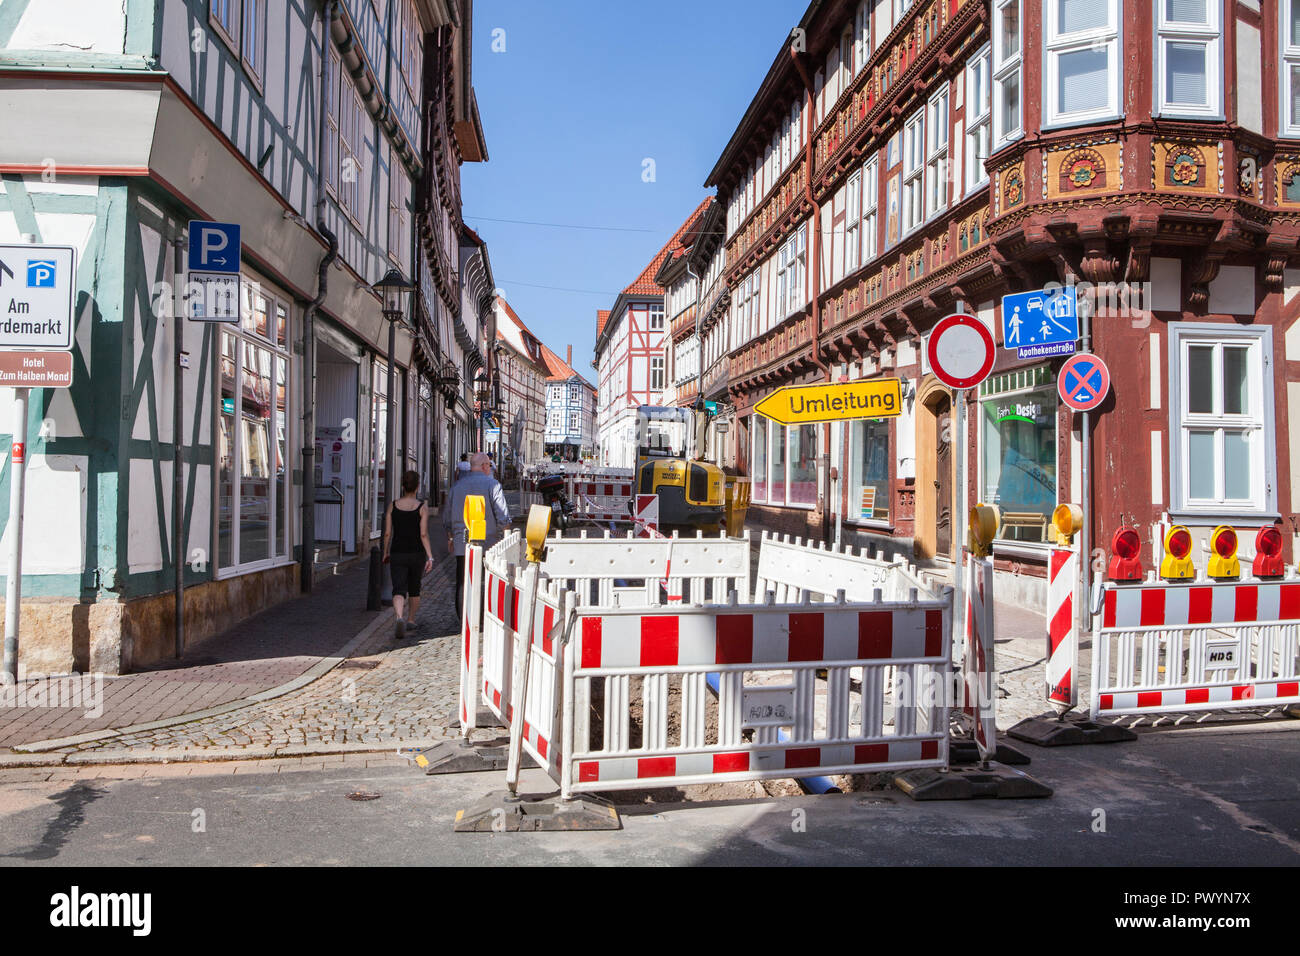 Construction site, Duderstadt, Lower Saxony, Germany, Europe - Stock Image